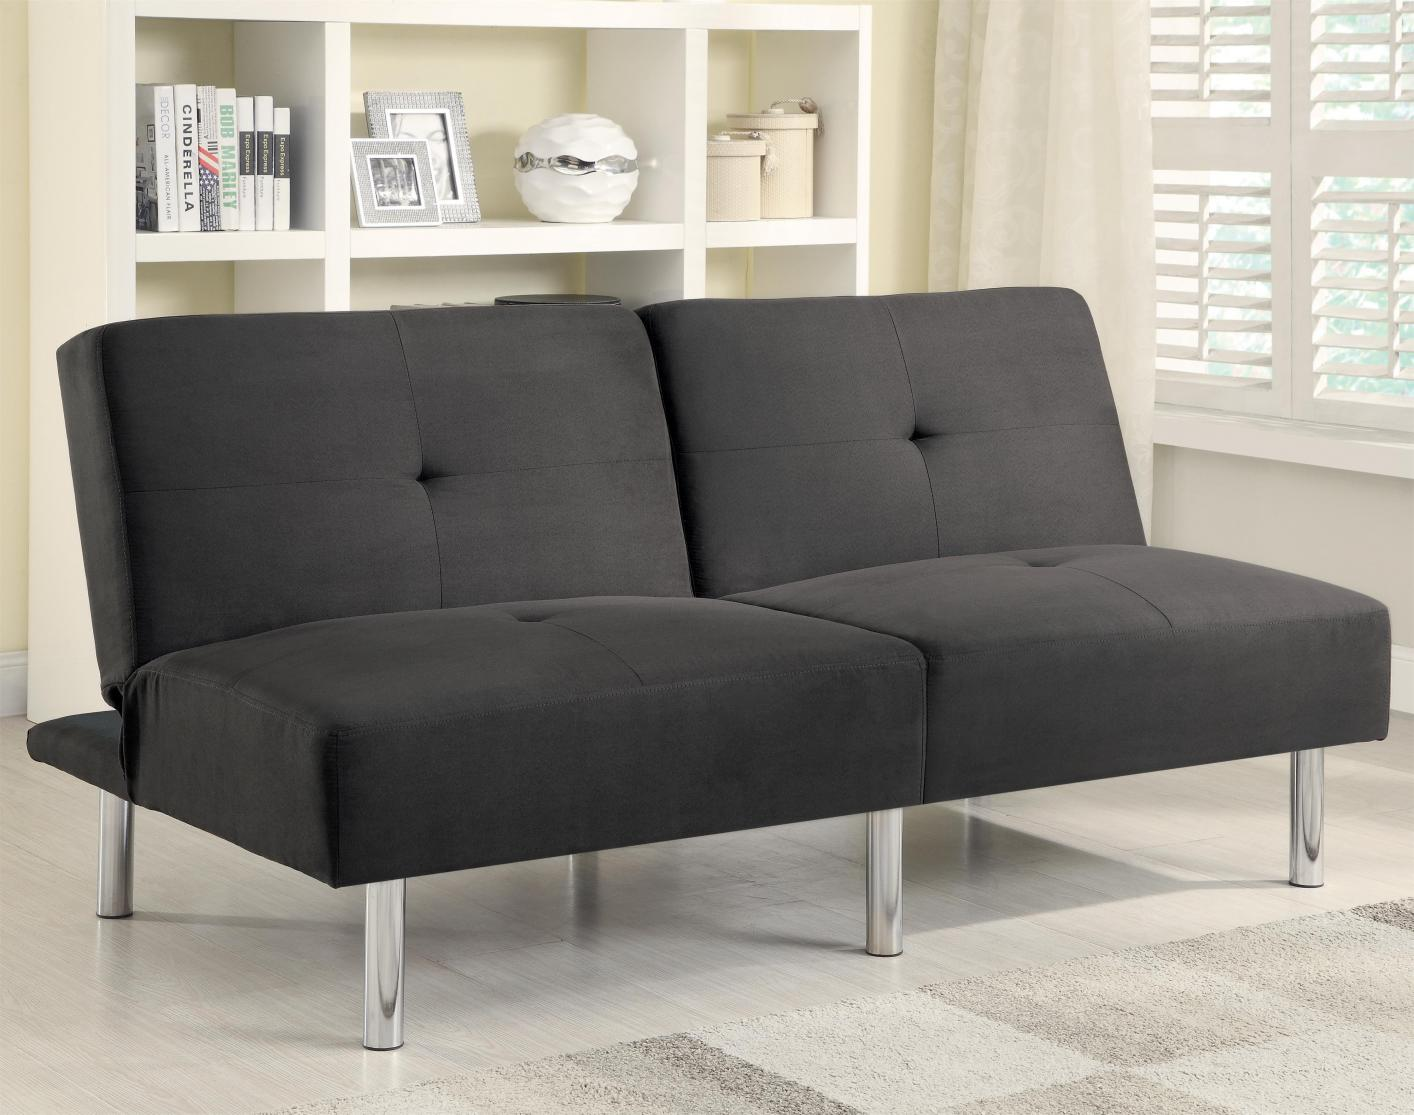 Grey Fabric Futon